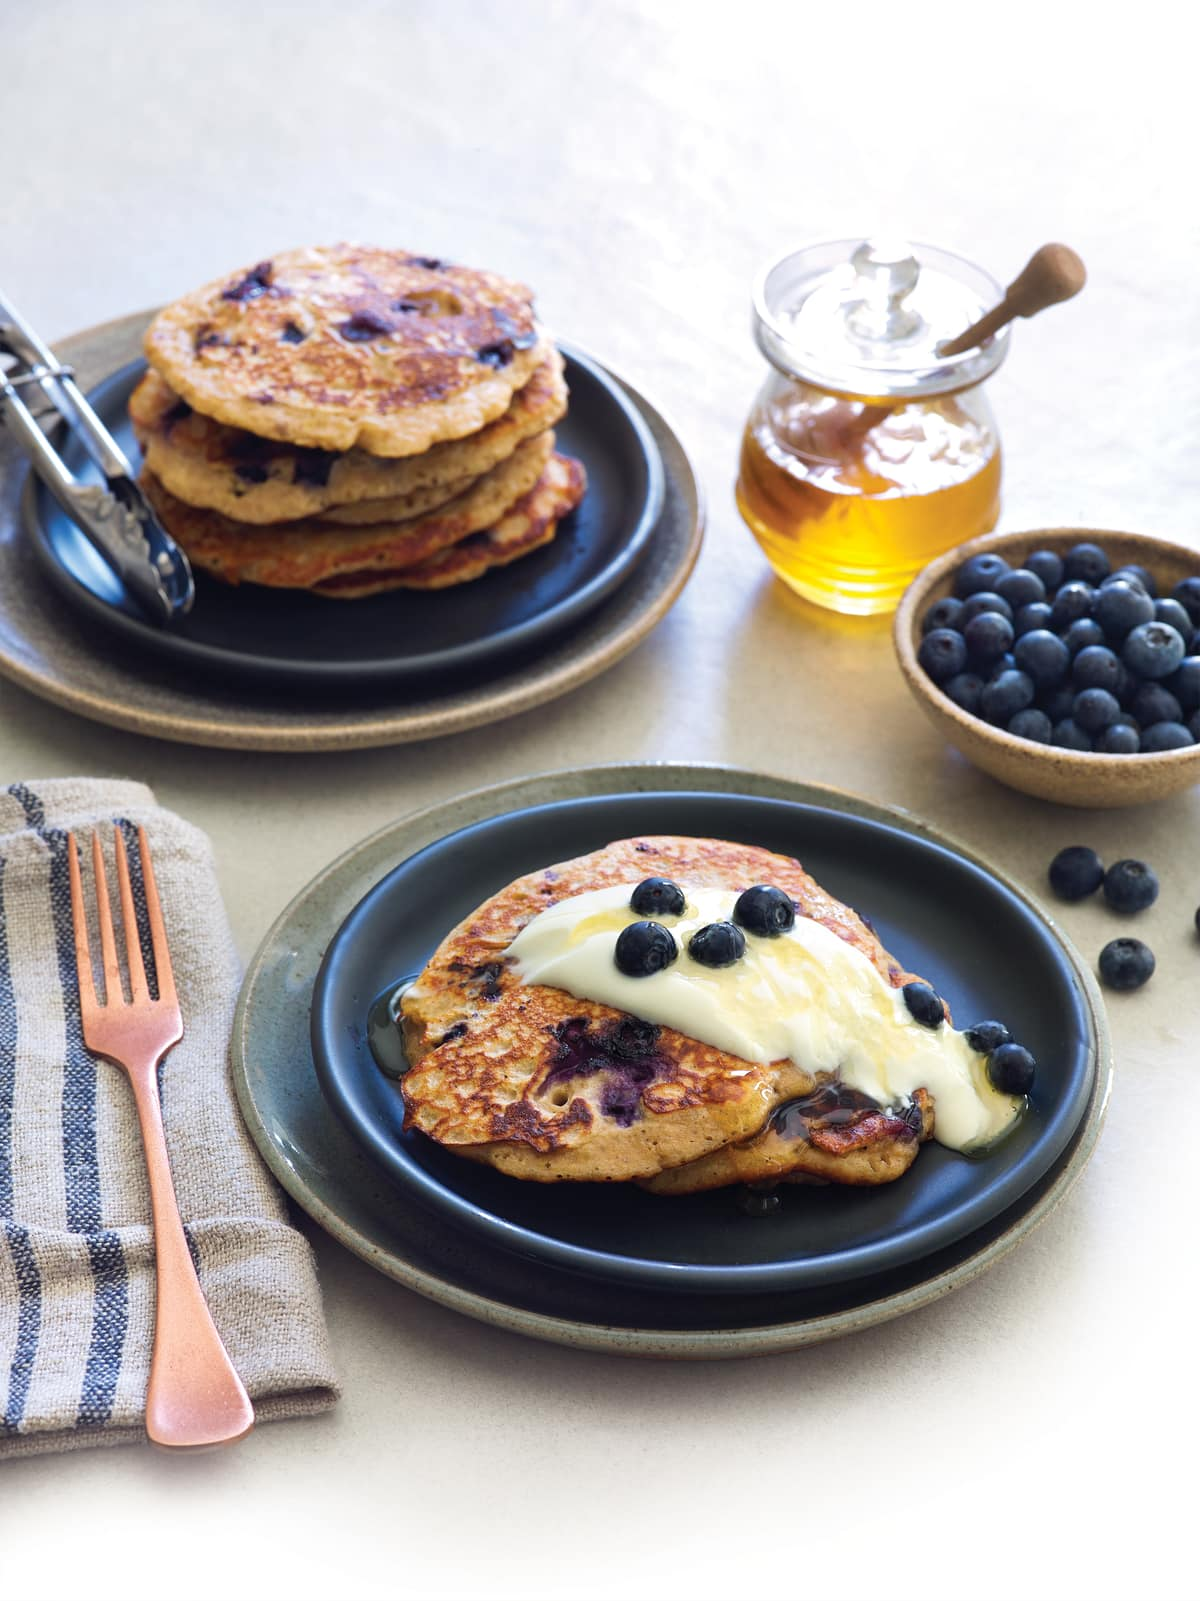 Gluten Free Quinoa And Lemon Pancakes Healthy Food Guide Craft breweries (level 12) badge! gluten free quinoa and lemon pancakes